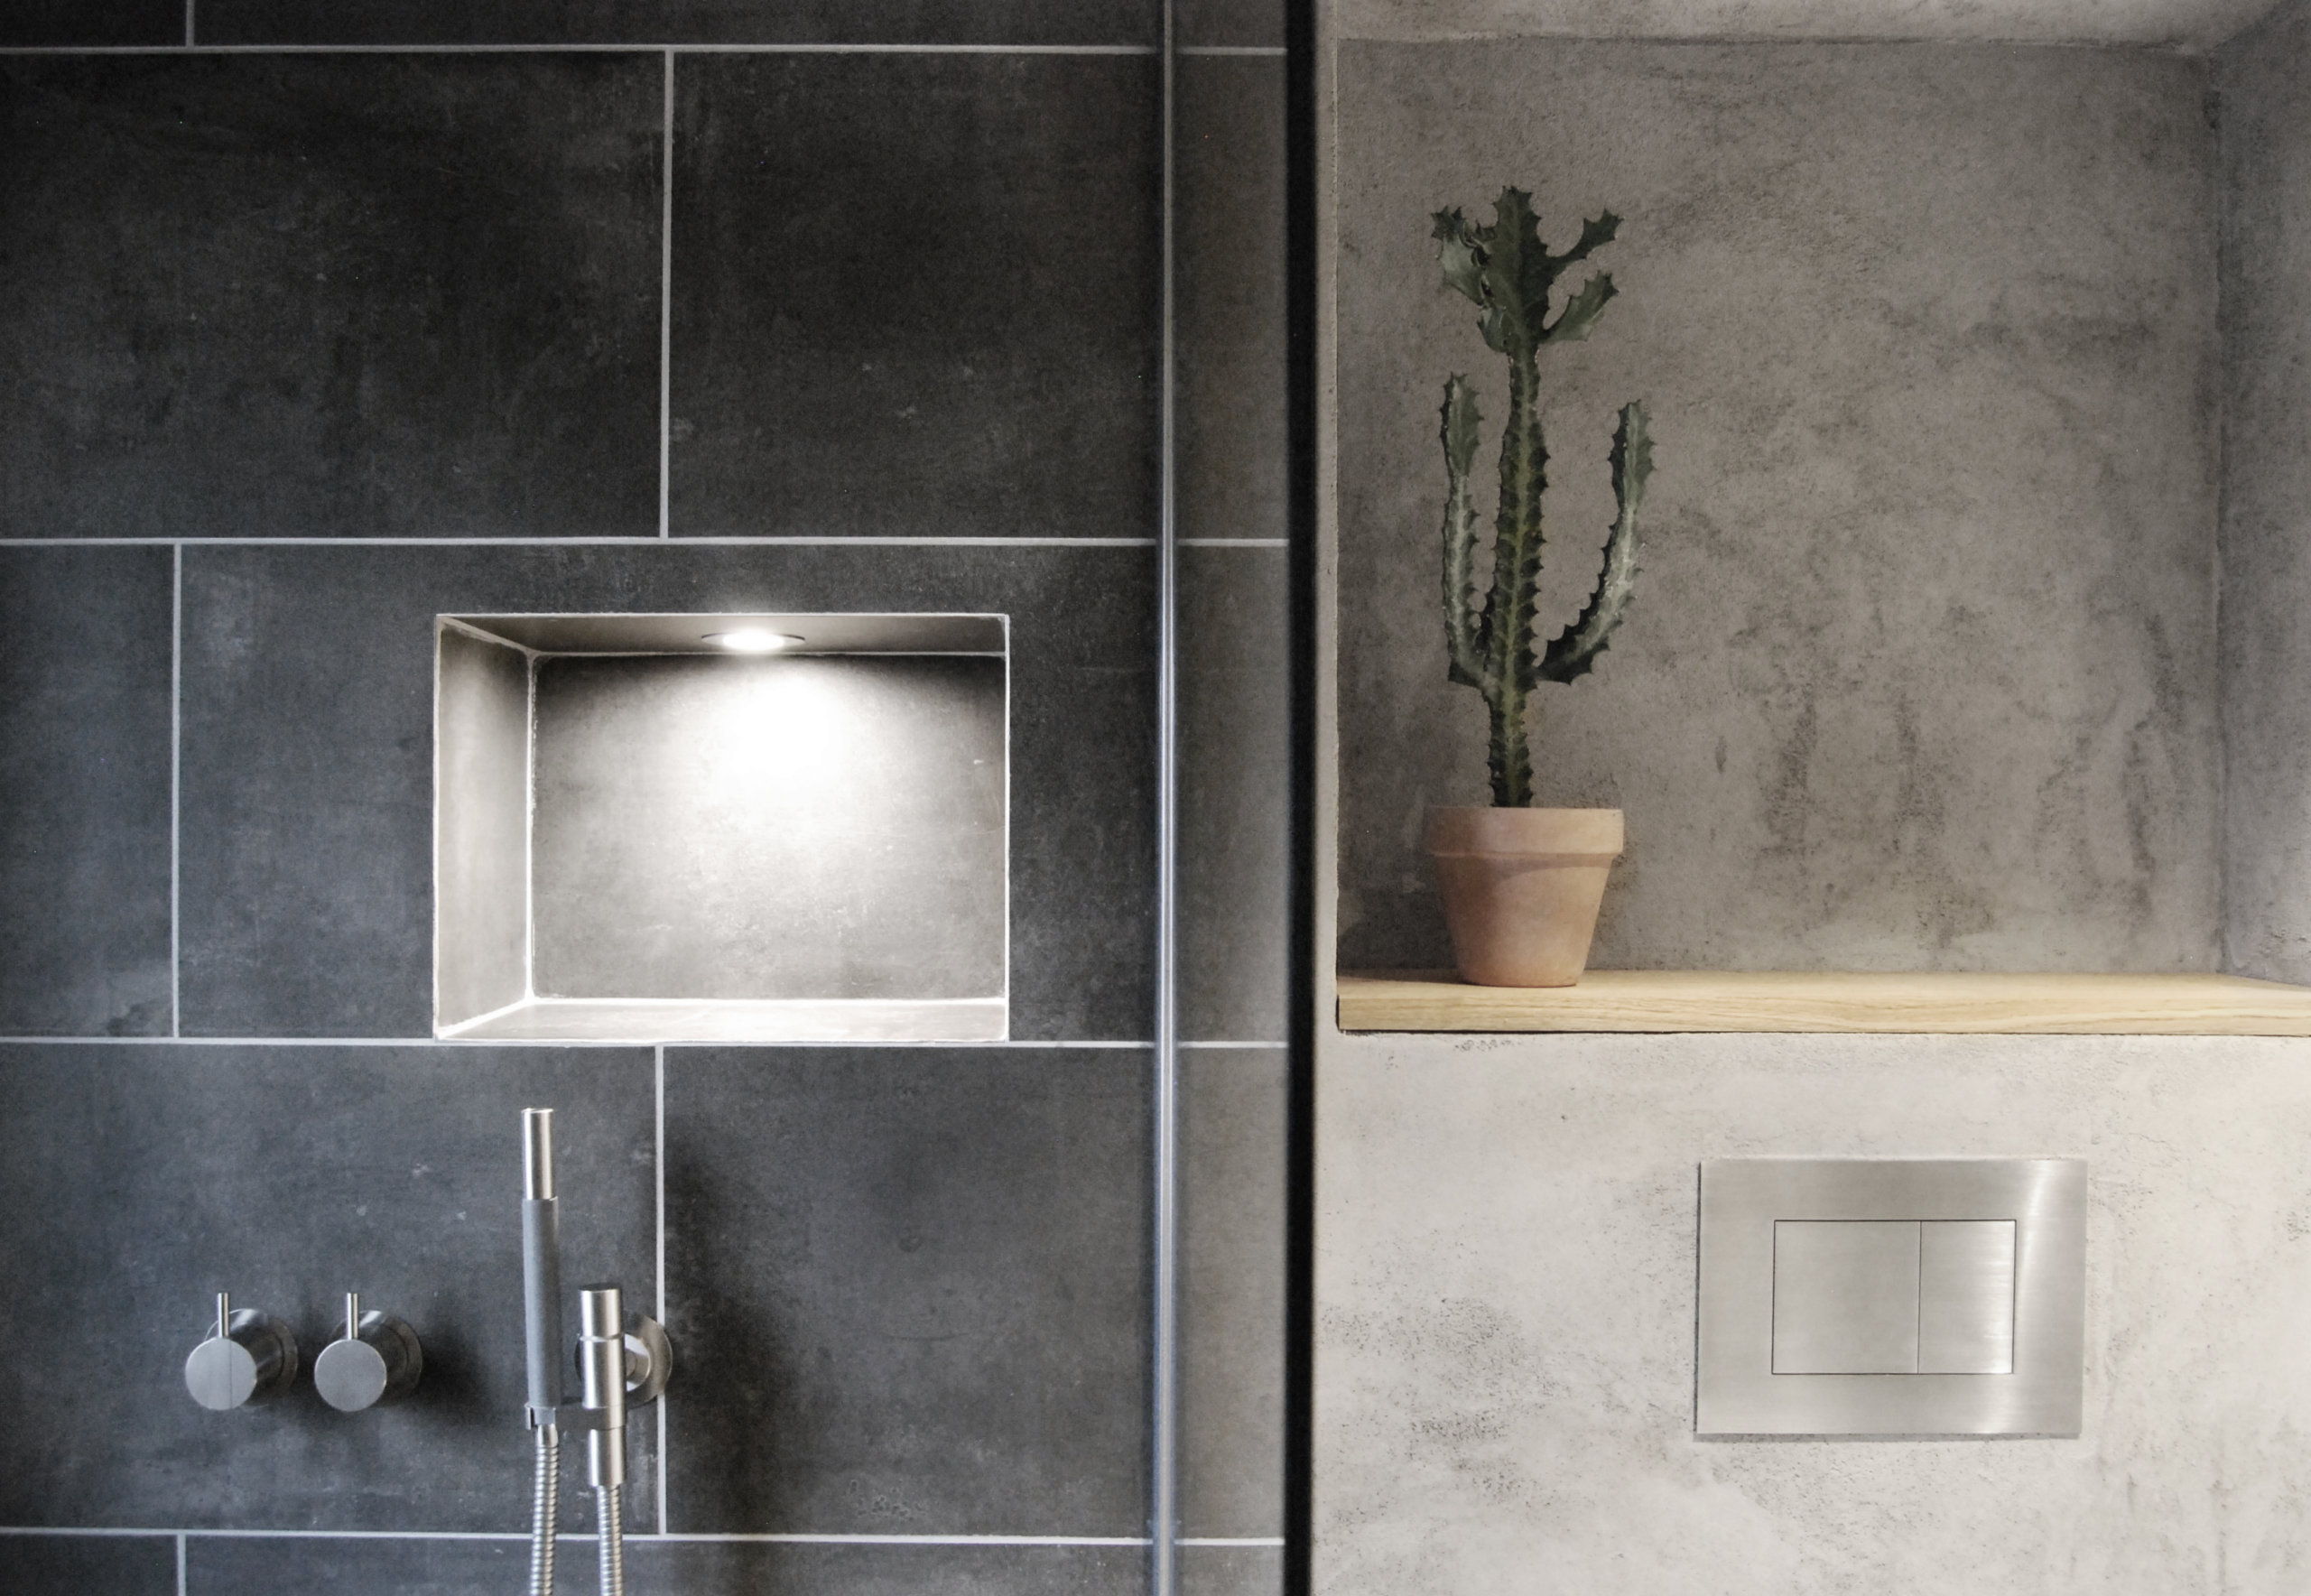 Finding the right gray tiles for your bathroom and shower area